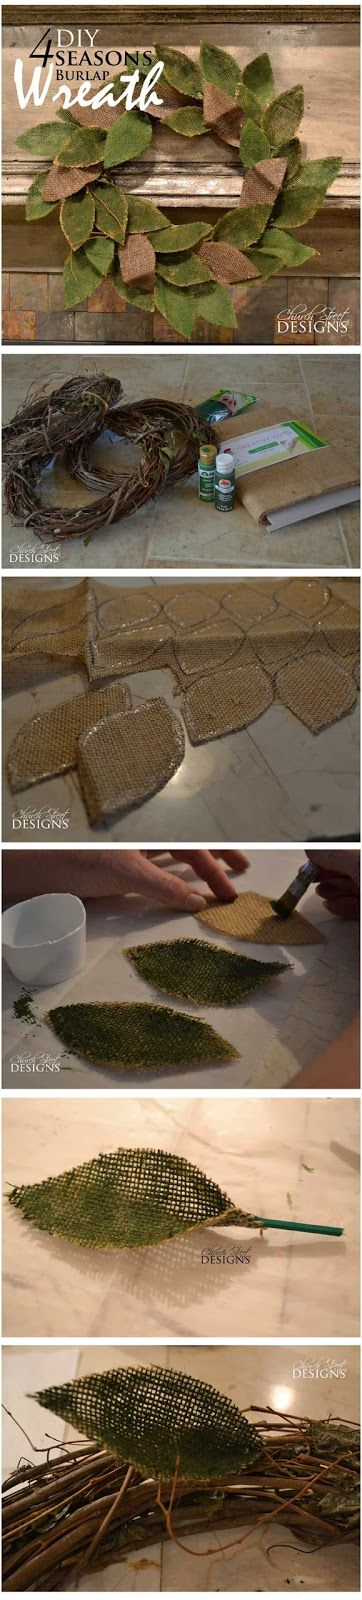 Easy DIY Burlap Wreath - How to make a beautiful and inexpensive burlap wreath for any season - Detailed instructions by Church Street Designs